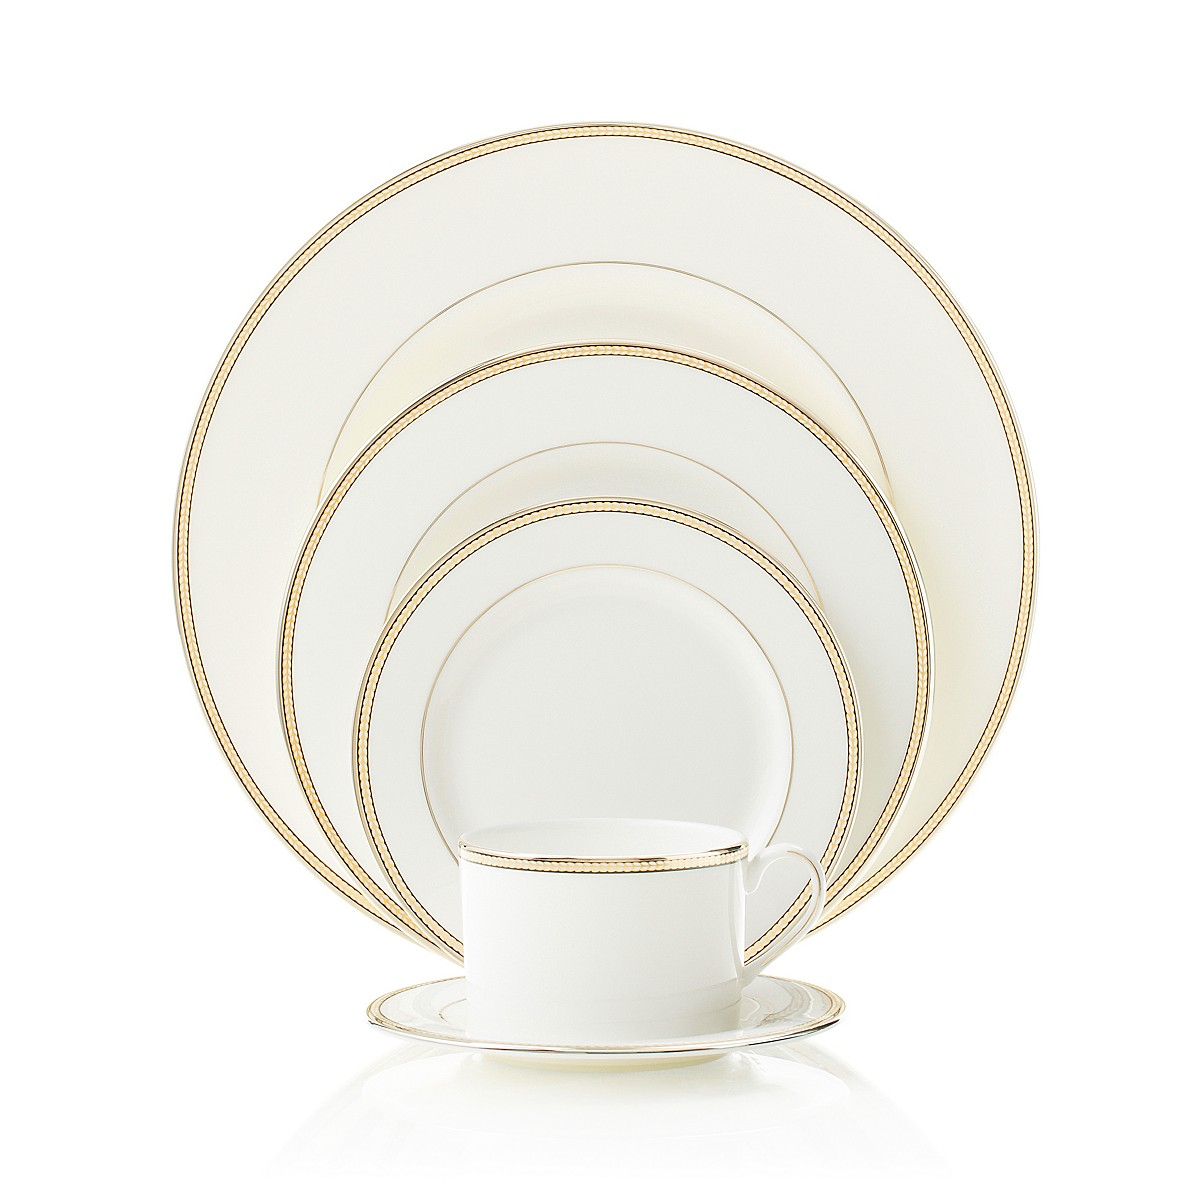 Wine Dinnerware Sets | Kate Spade Larabee Road | Kate Spade China